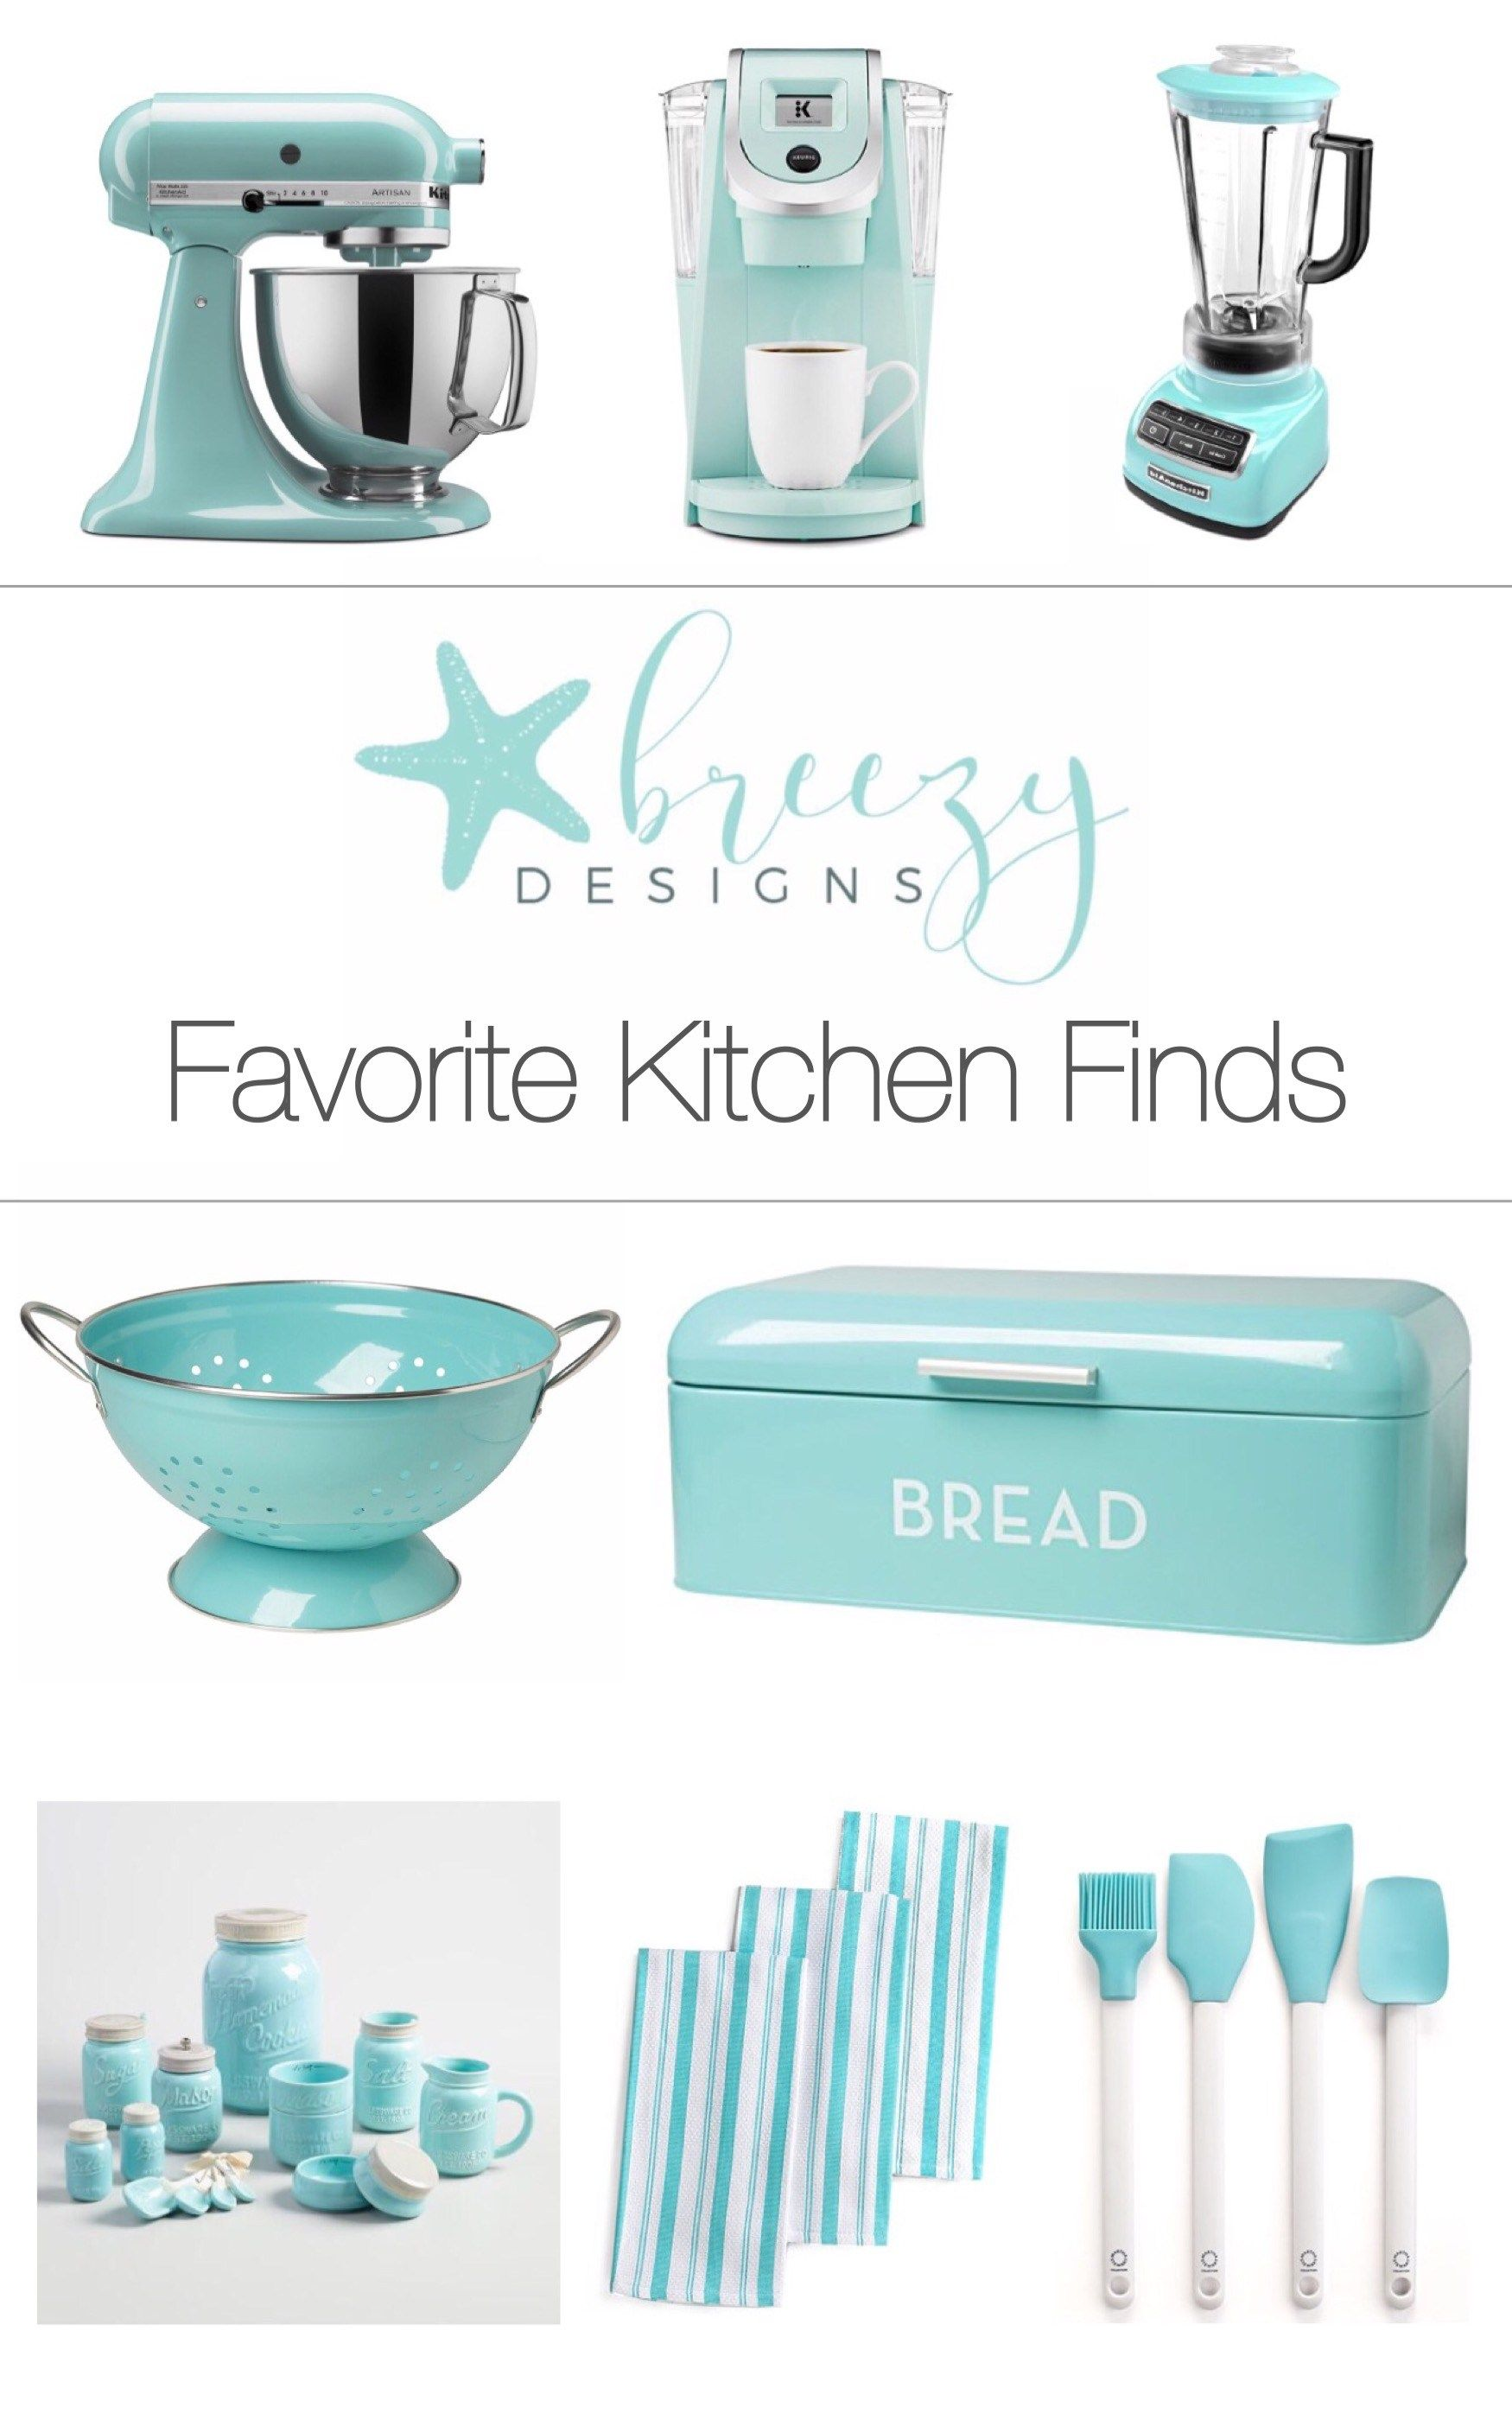 Happy Saturday Friends I Wanted To Share With You Today Some Of My Favorite Aqua Kitchen Finds I Love To Aqua Kitchen Tiffany Blue Kitchen Blue Kitchen Decor